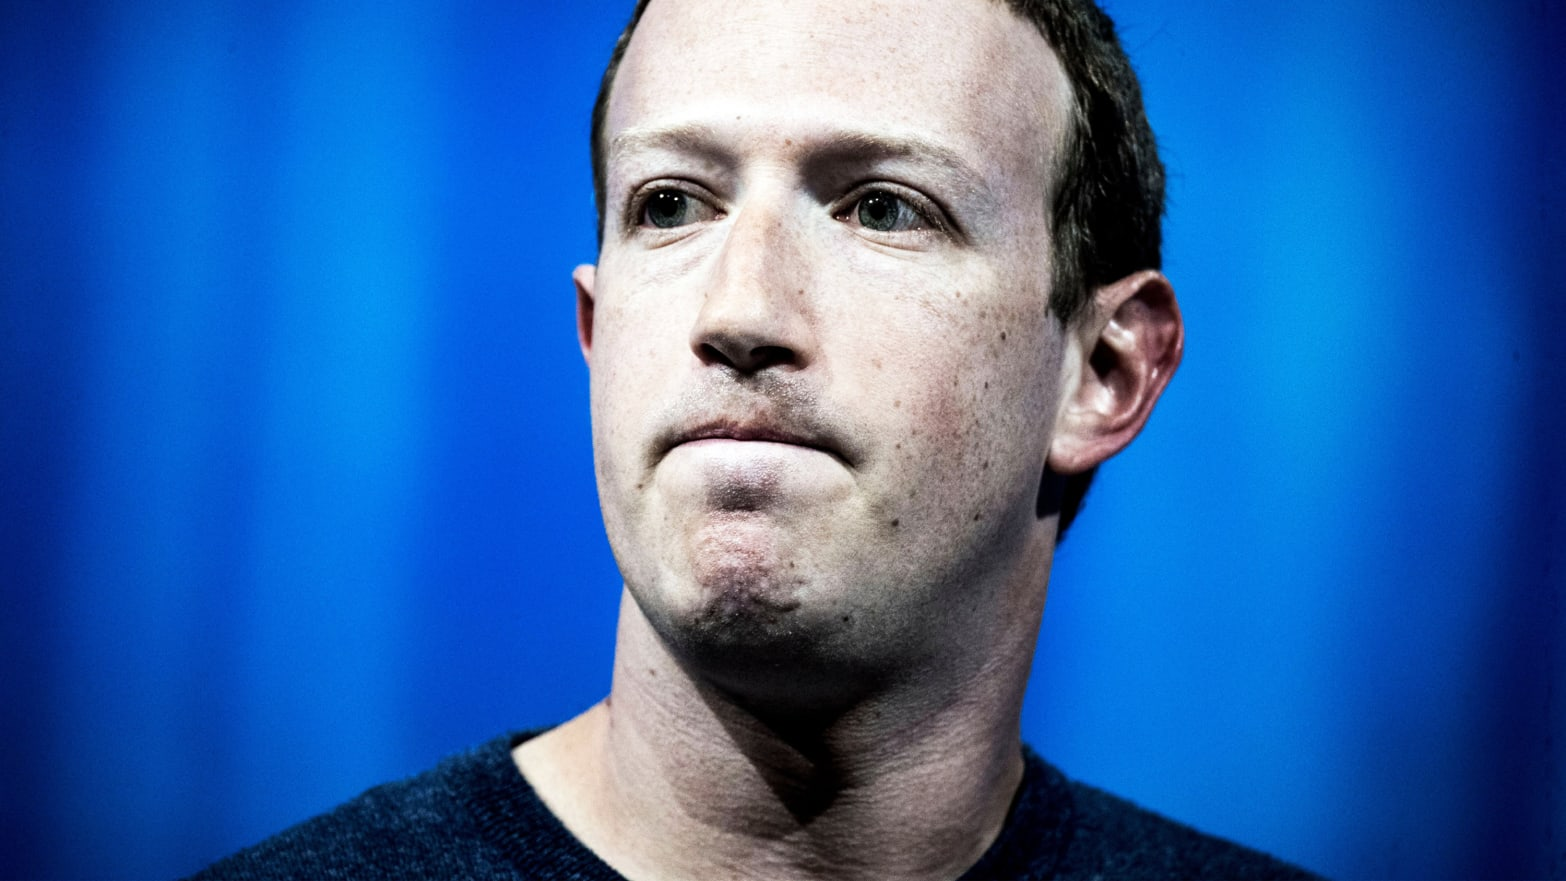 Facebook Emails on Cambridge Analytica Scandal Could Be Trouble for Zuckerberg